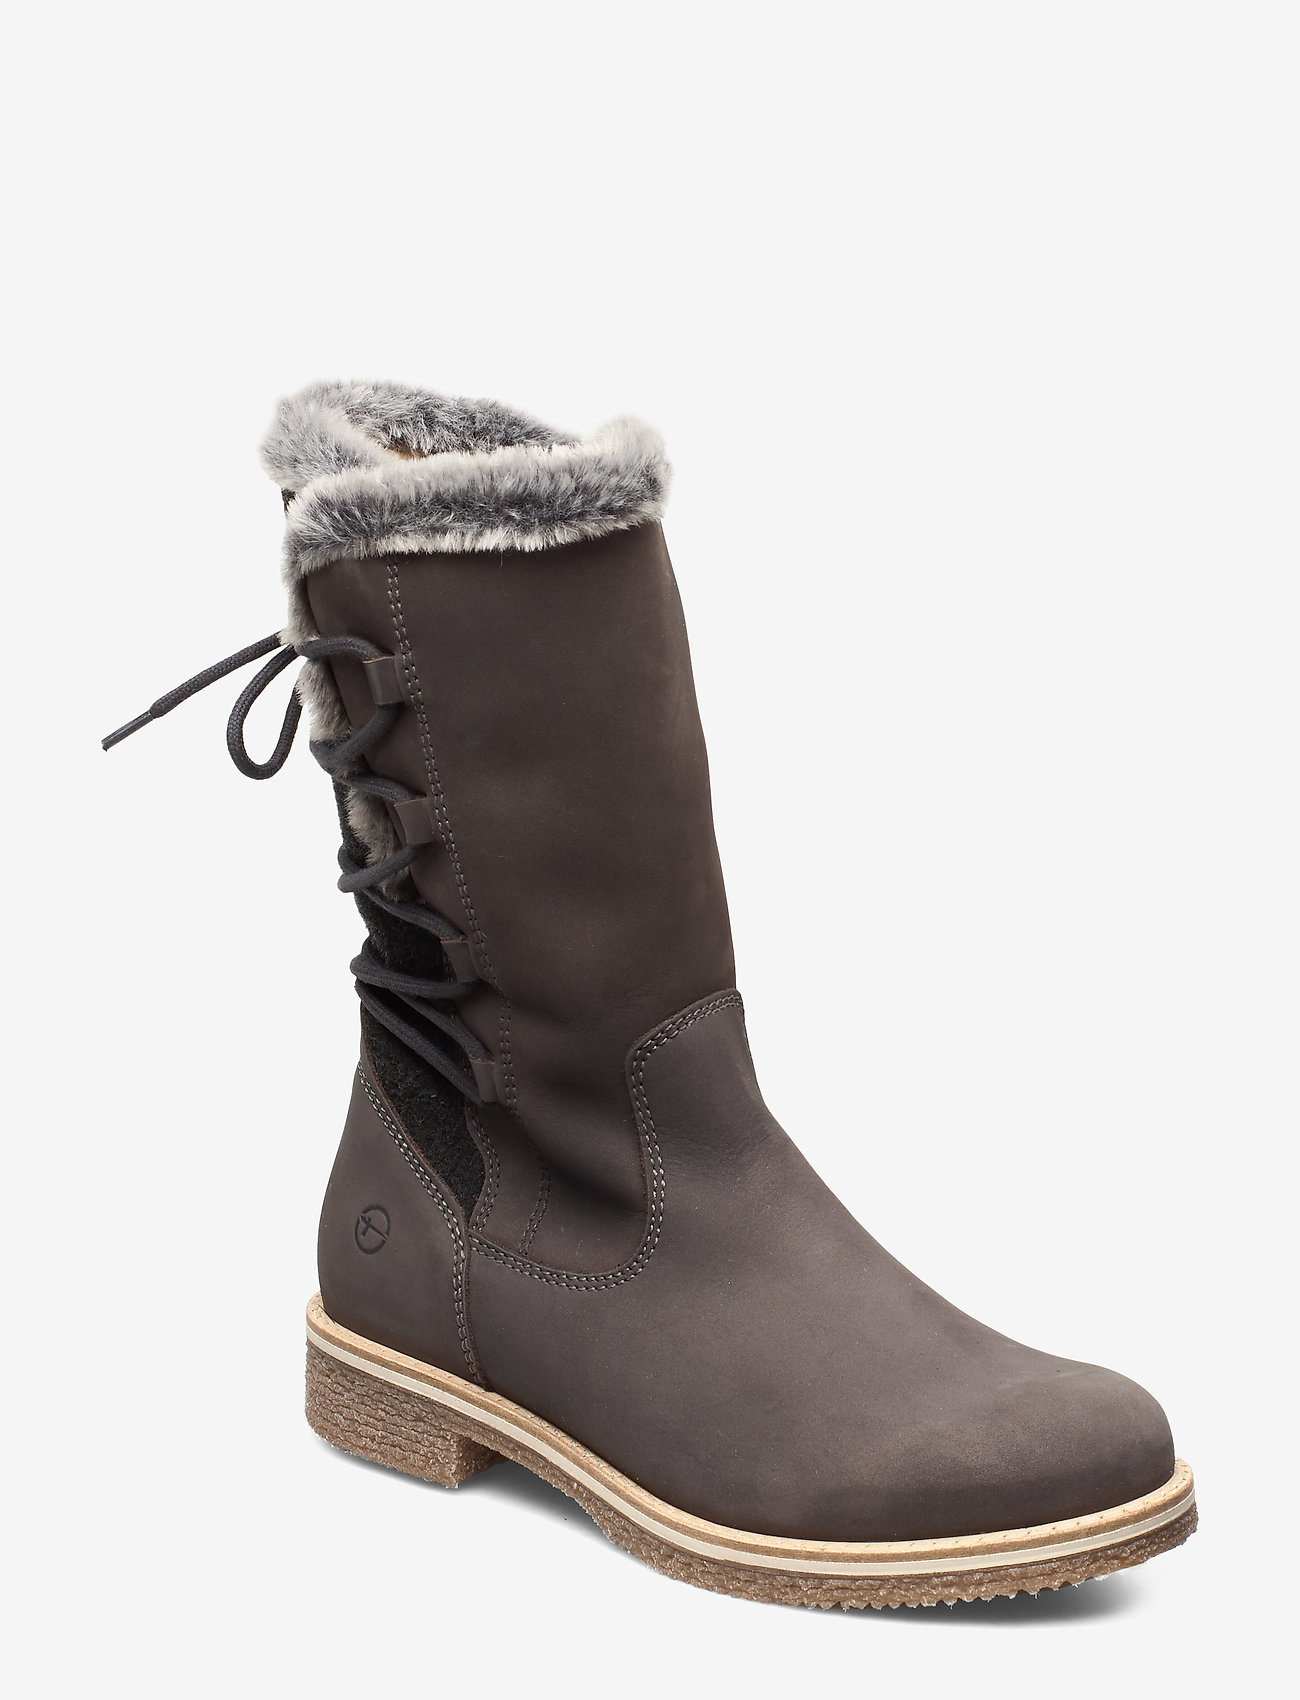 Woms Boots (Anthracite) (779.40 kr) Tamaris |